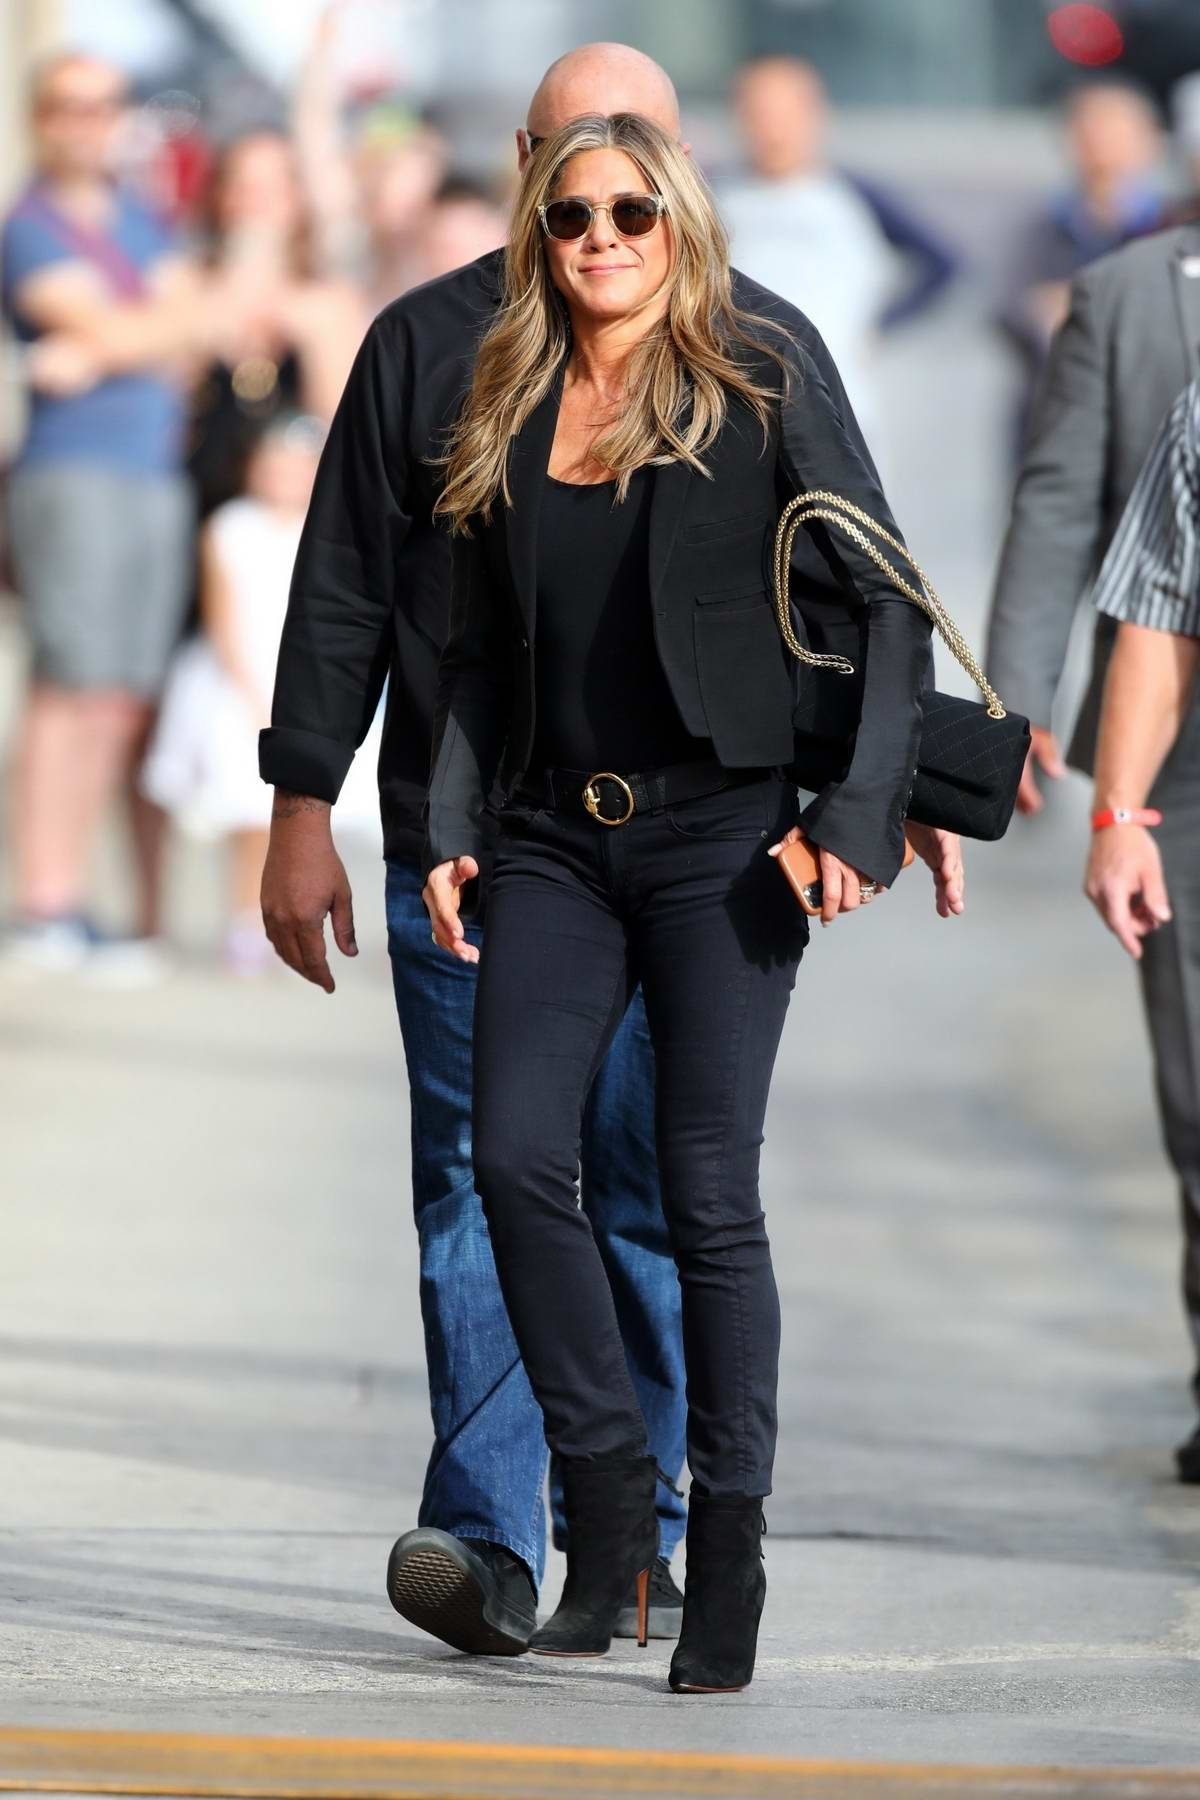 Jennifer Aniston looks chic in all-black as she arrives for an appearance on 'Jimmy Kimmel Live' in Hollywood, California